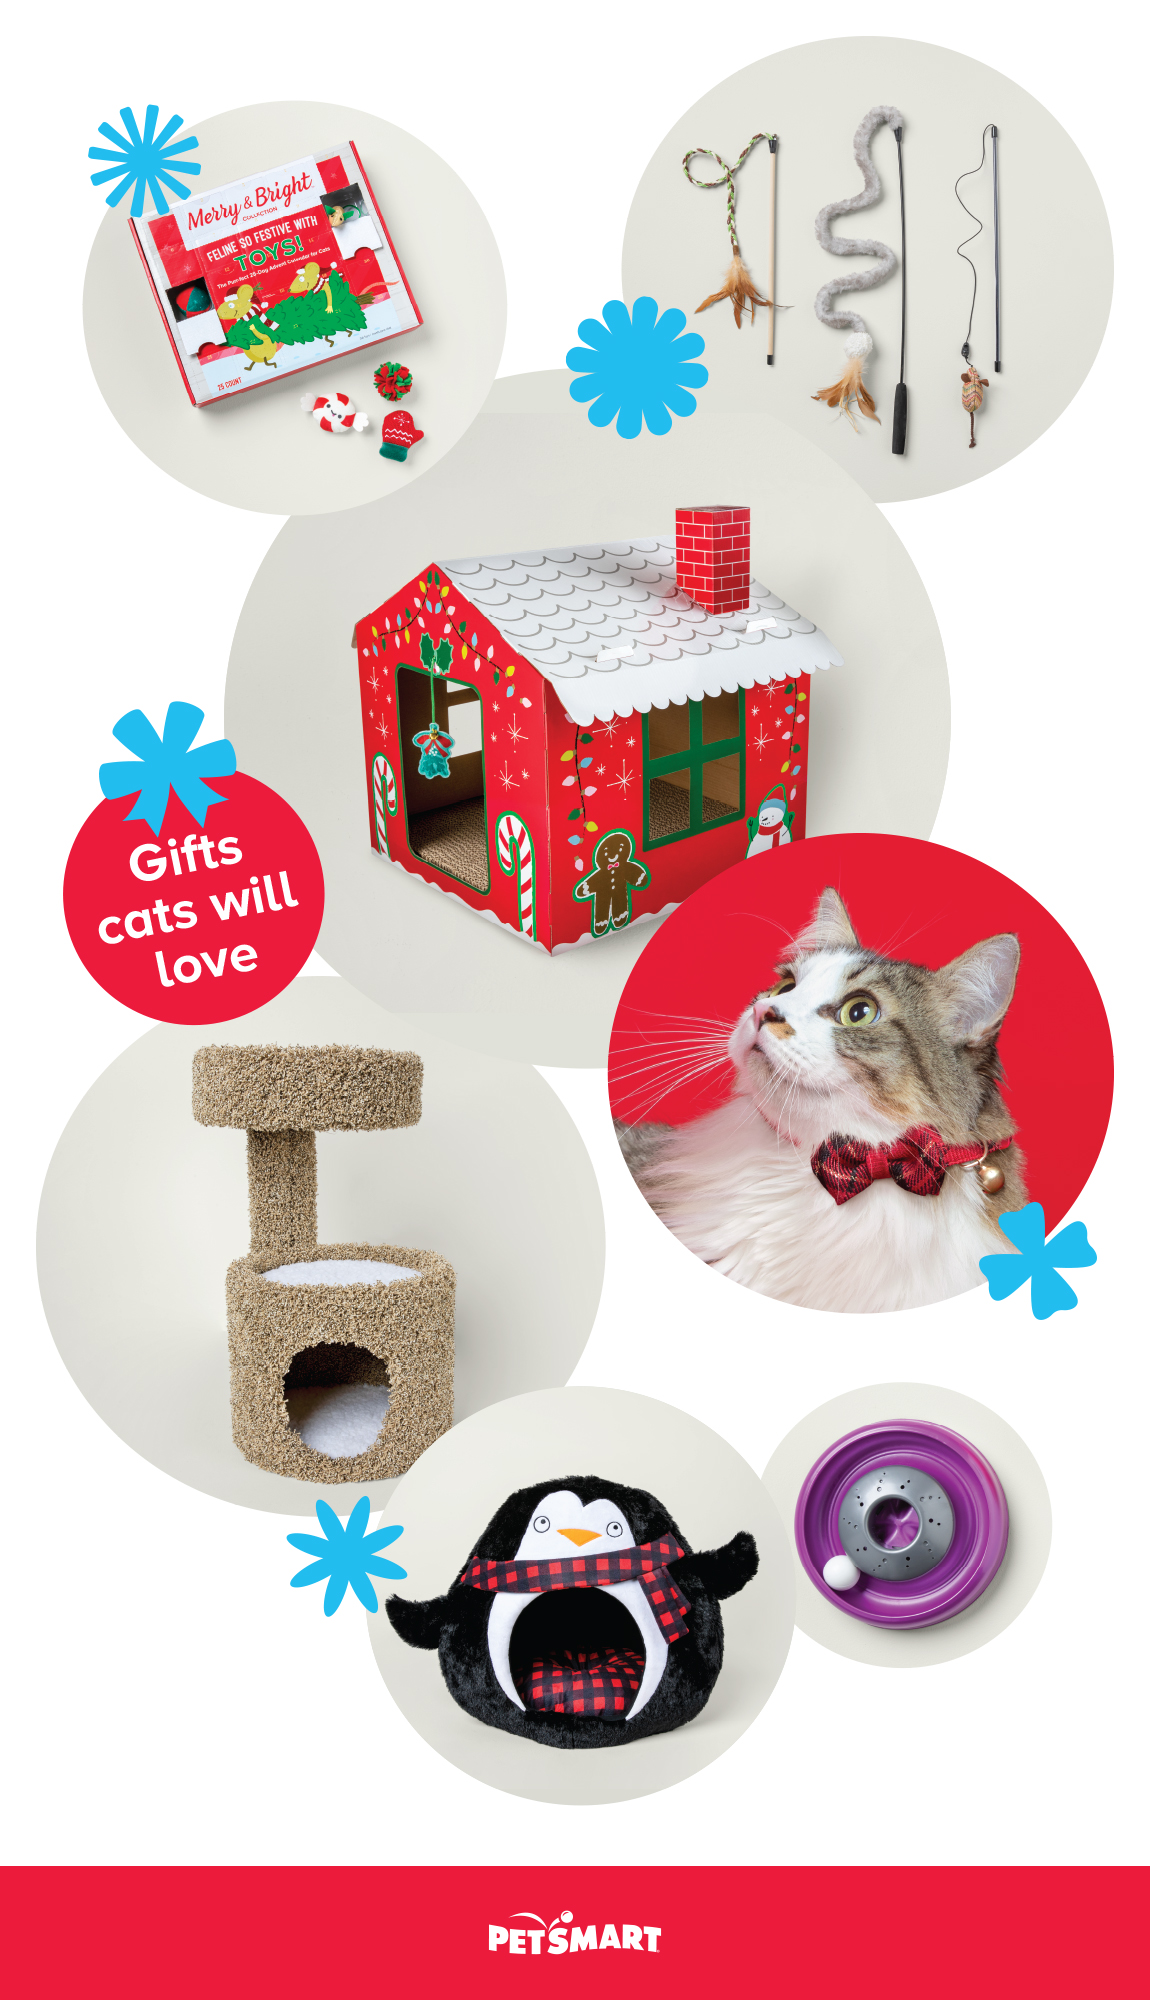 Gifts cats will love